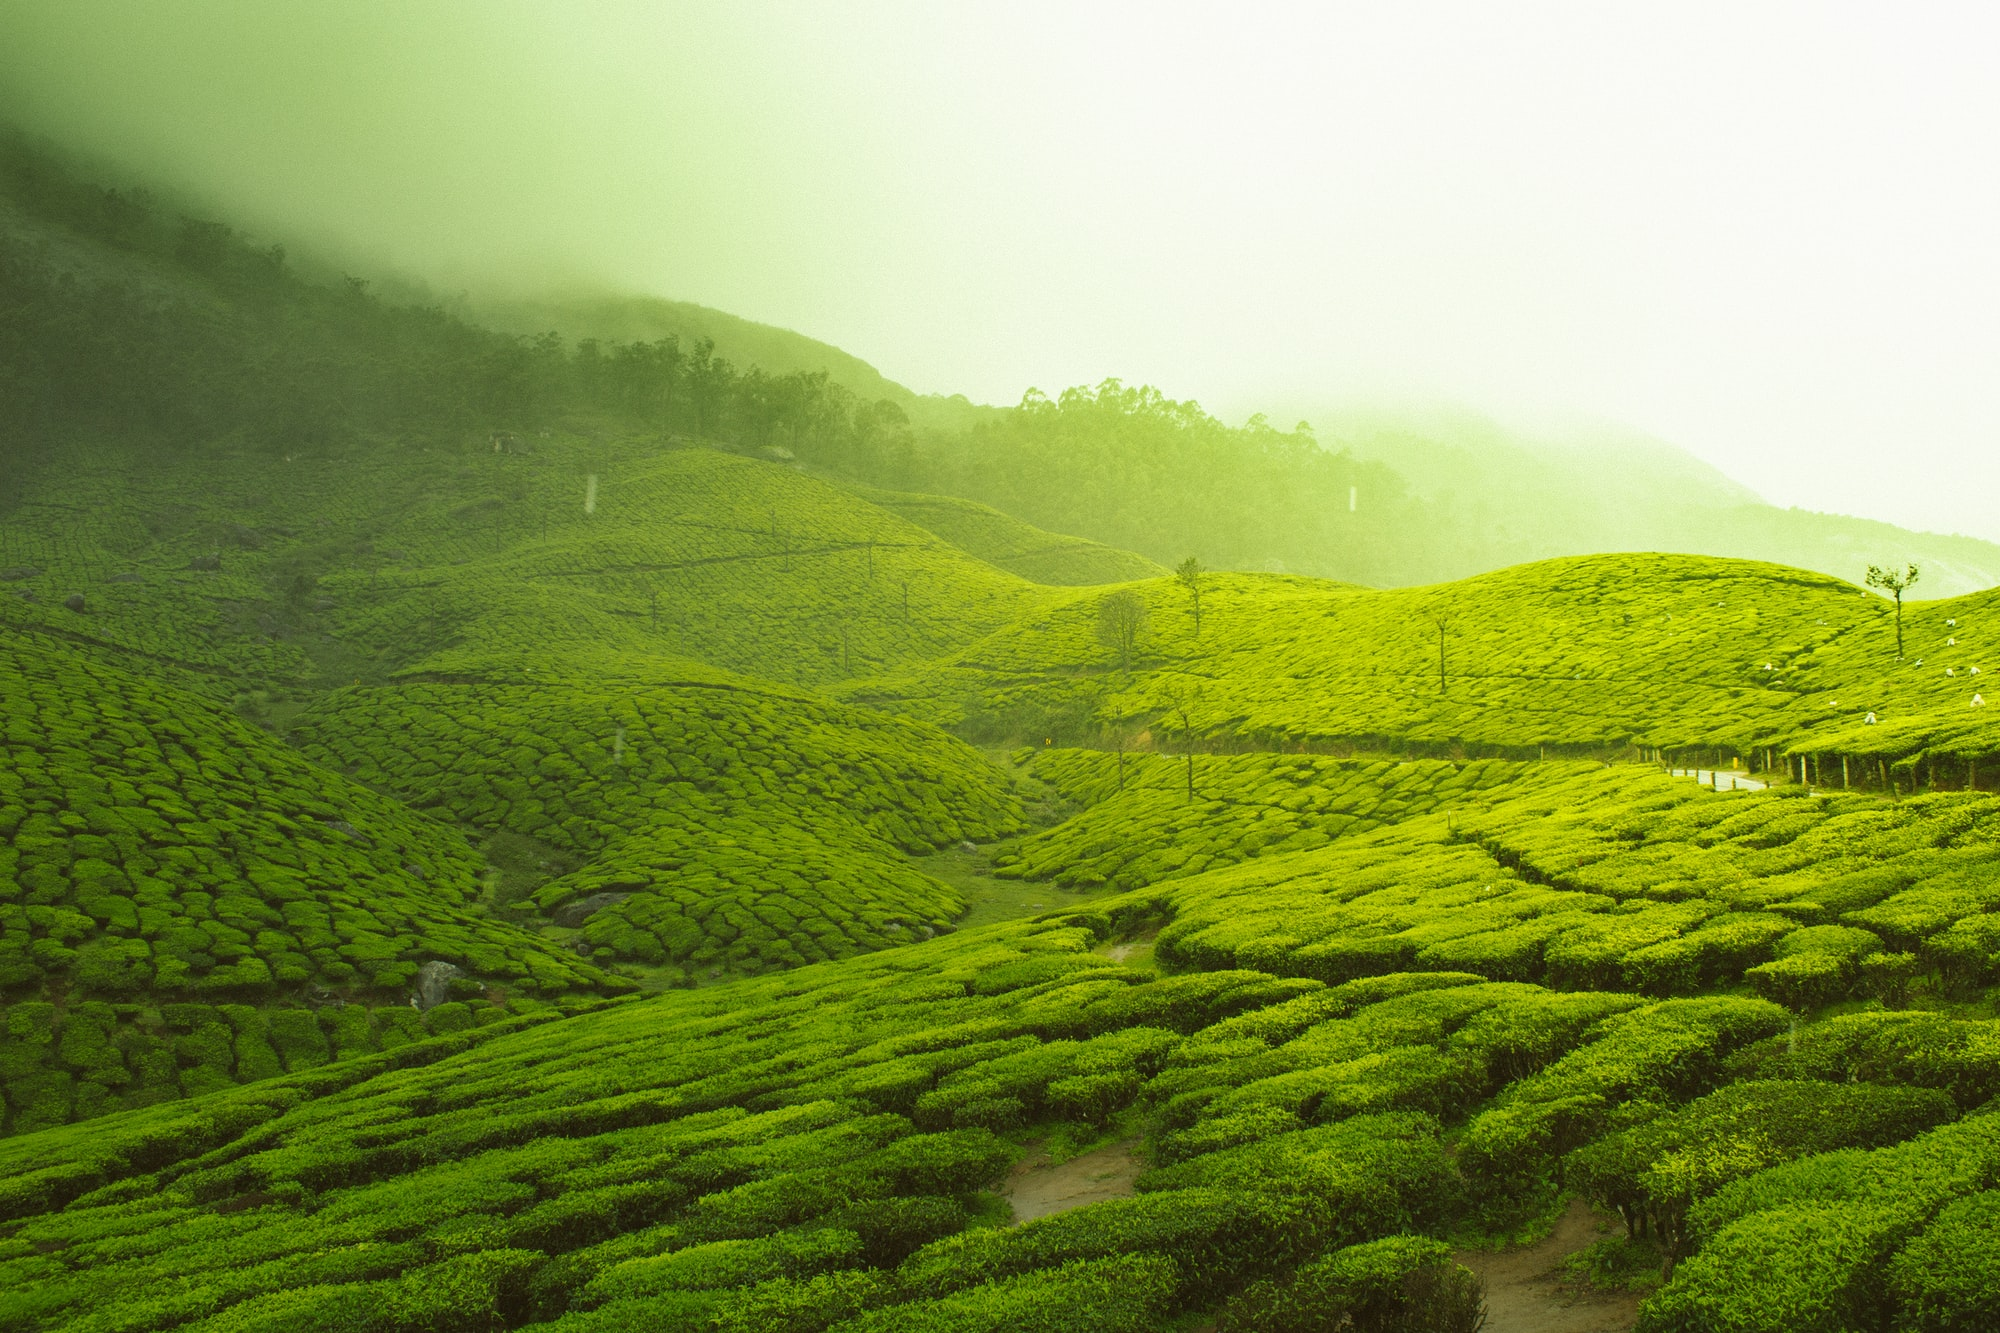 During my last trip across Kerala, India I came across this place amidst the tea gardens of Munnar. The place looked surreal filled with lushness of greenery. The little drizzle added to the beauty of the location. The relaxing feeling at the time was unforgettable. This photo always reminds me of what heaven on earth might look like :)